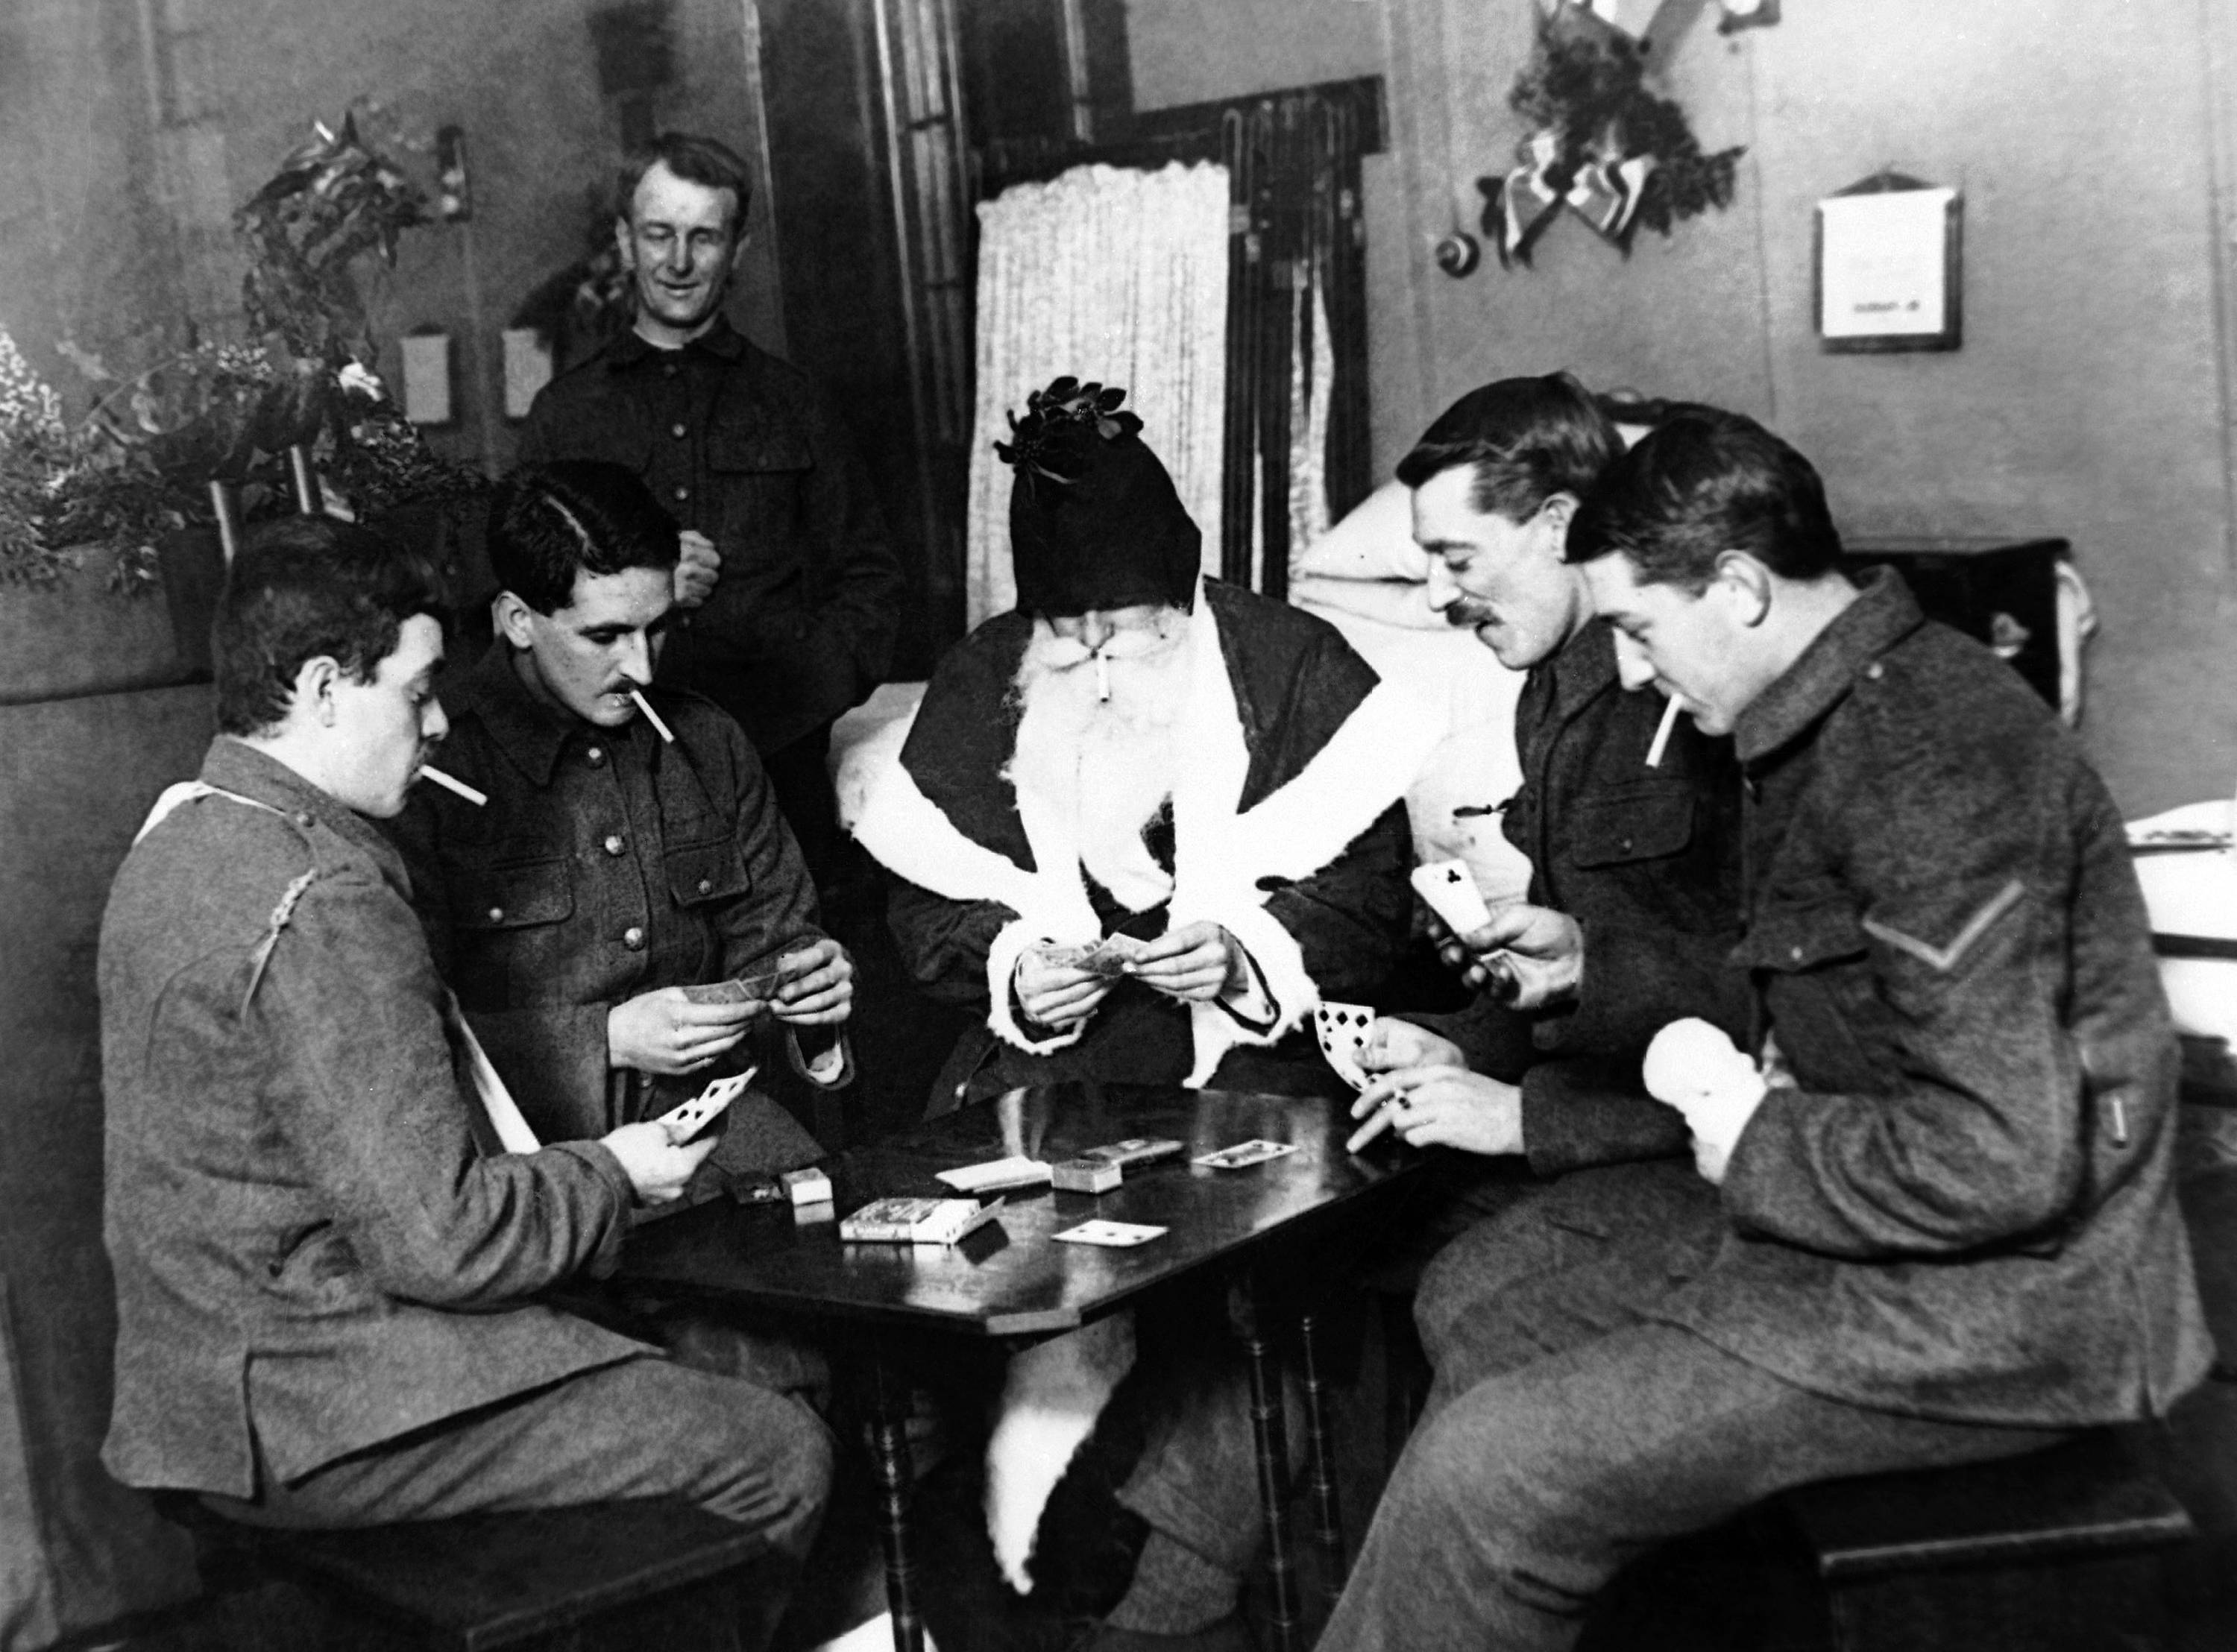 76 OF 100: In this undated file photo, wounded World War I soldiers play a game at a London hospital.